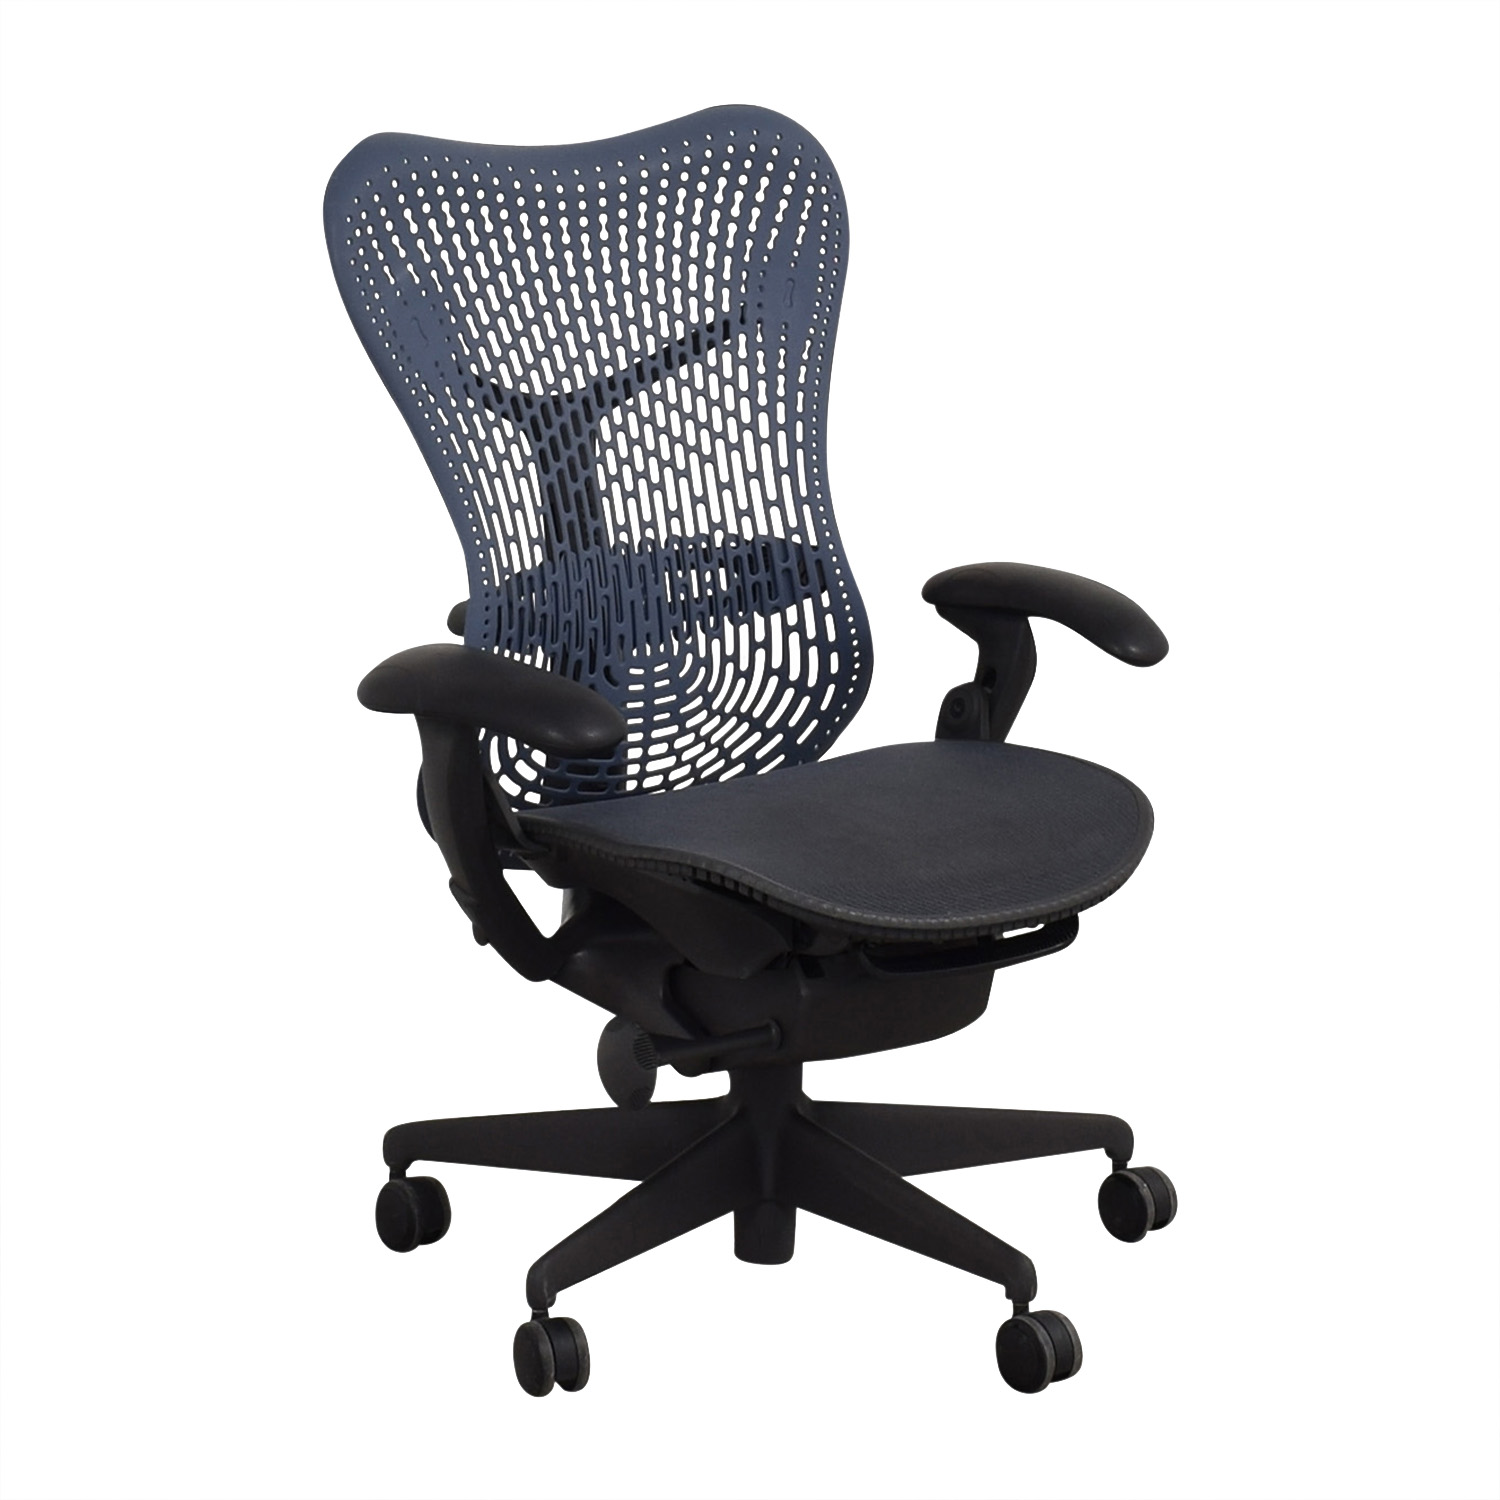 Herman Miller Herman Miller Aeron Office Chair on sale